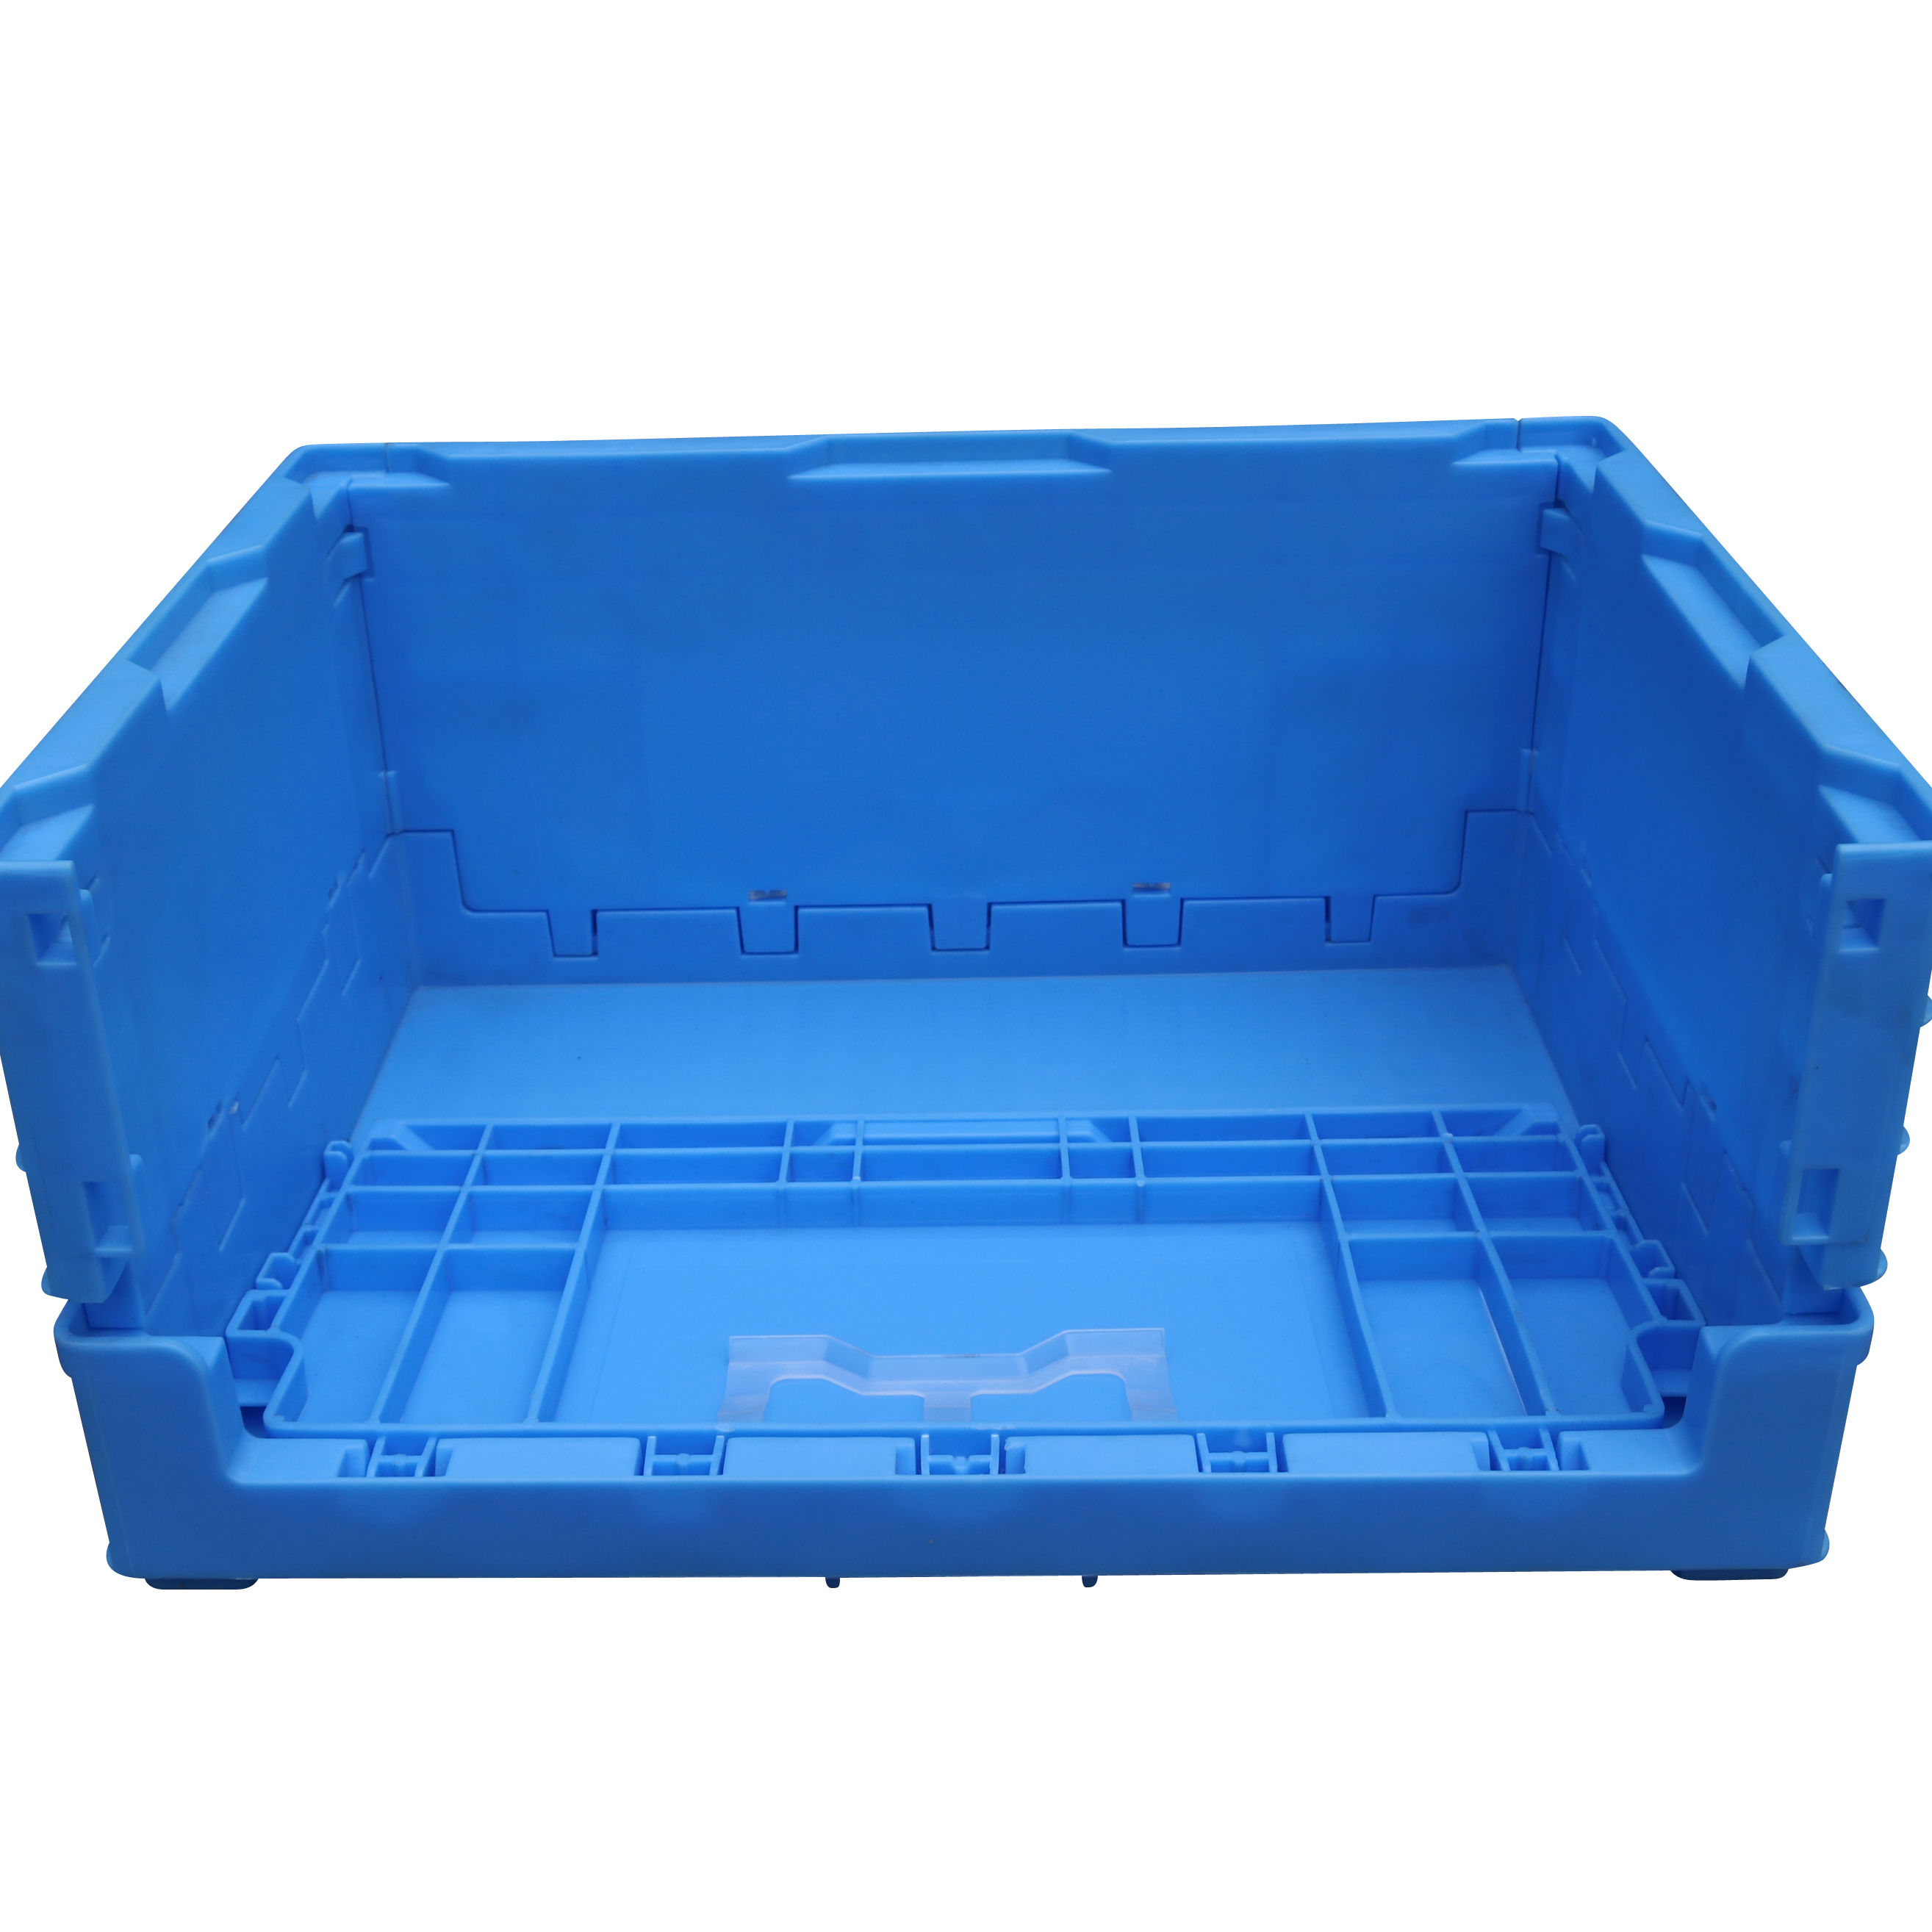 JOIN Attached Lid Solid Folding Crates Collapsible Turnover Container plastic collapsible Moving Box